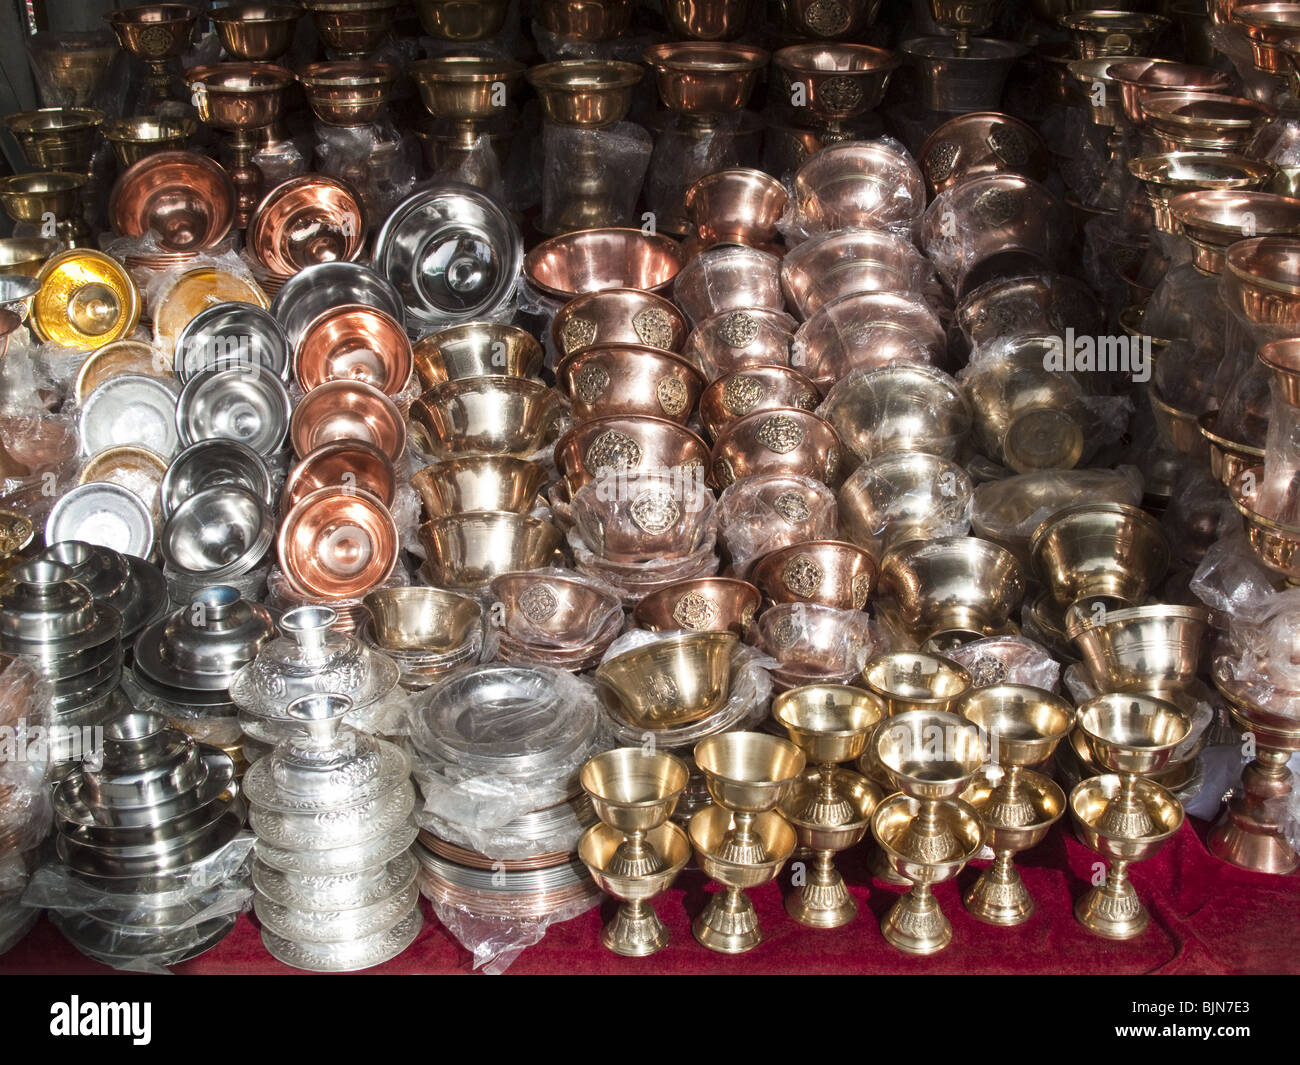 Stacks of candle holders in Barkhor Square Market, Lhasa, Tibet - Stock Image